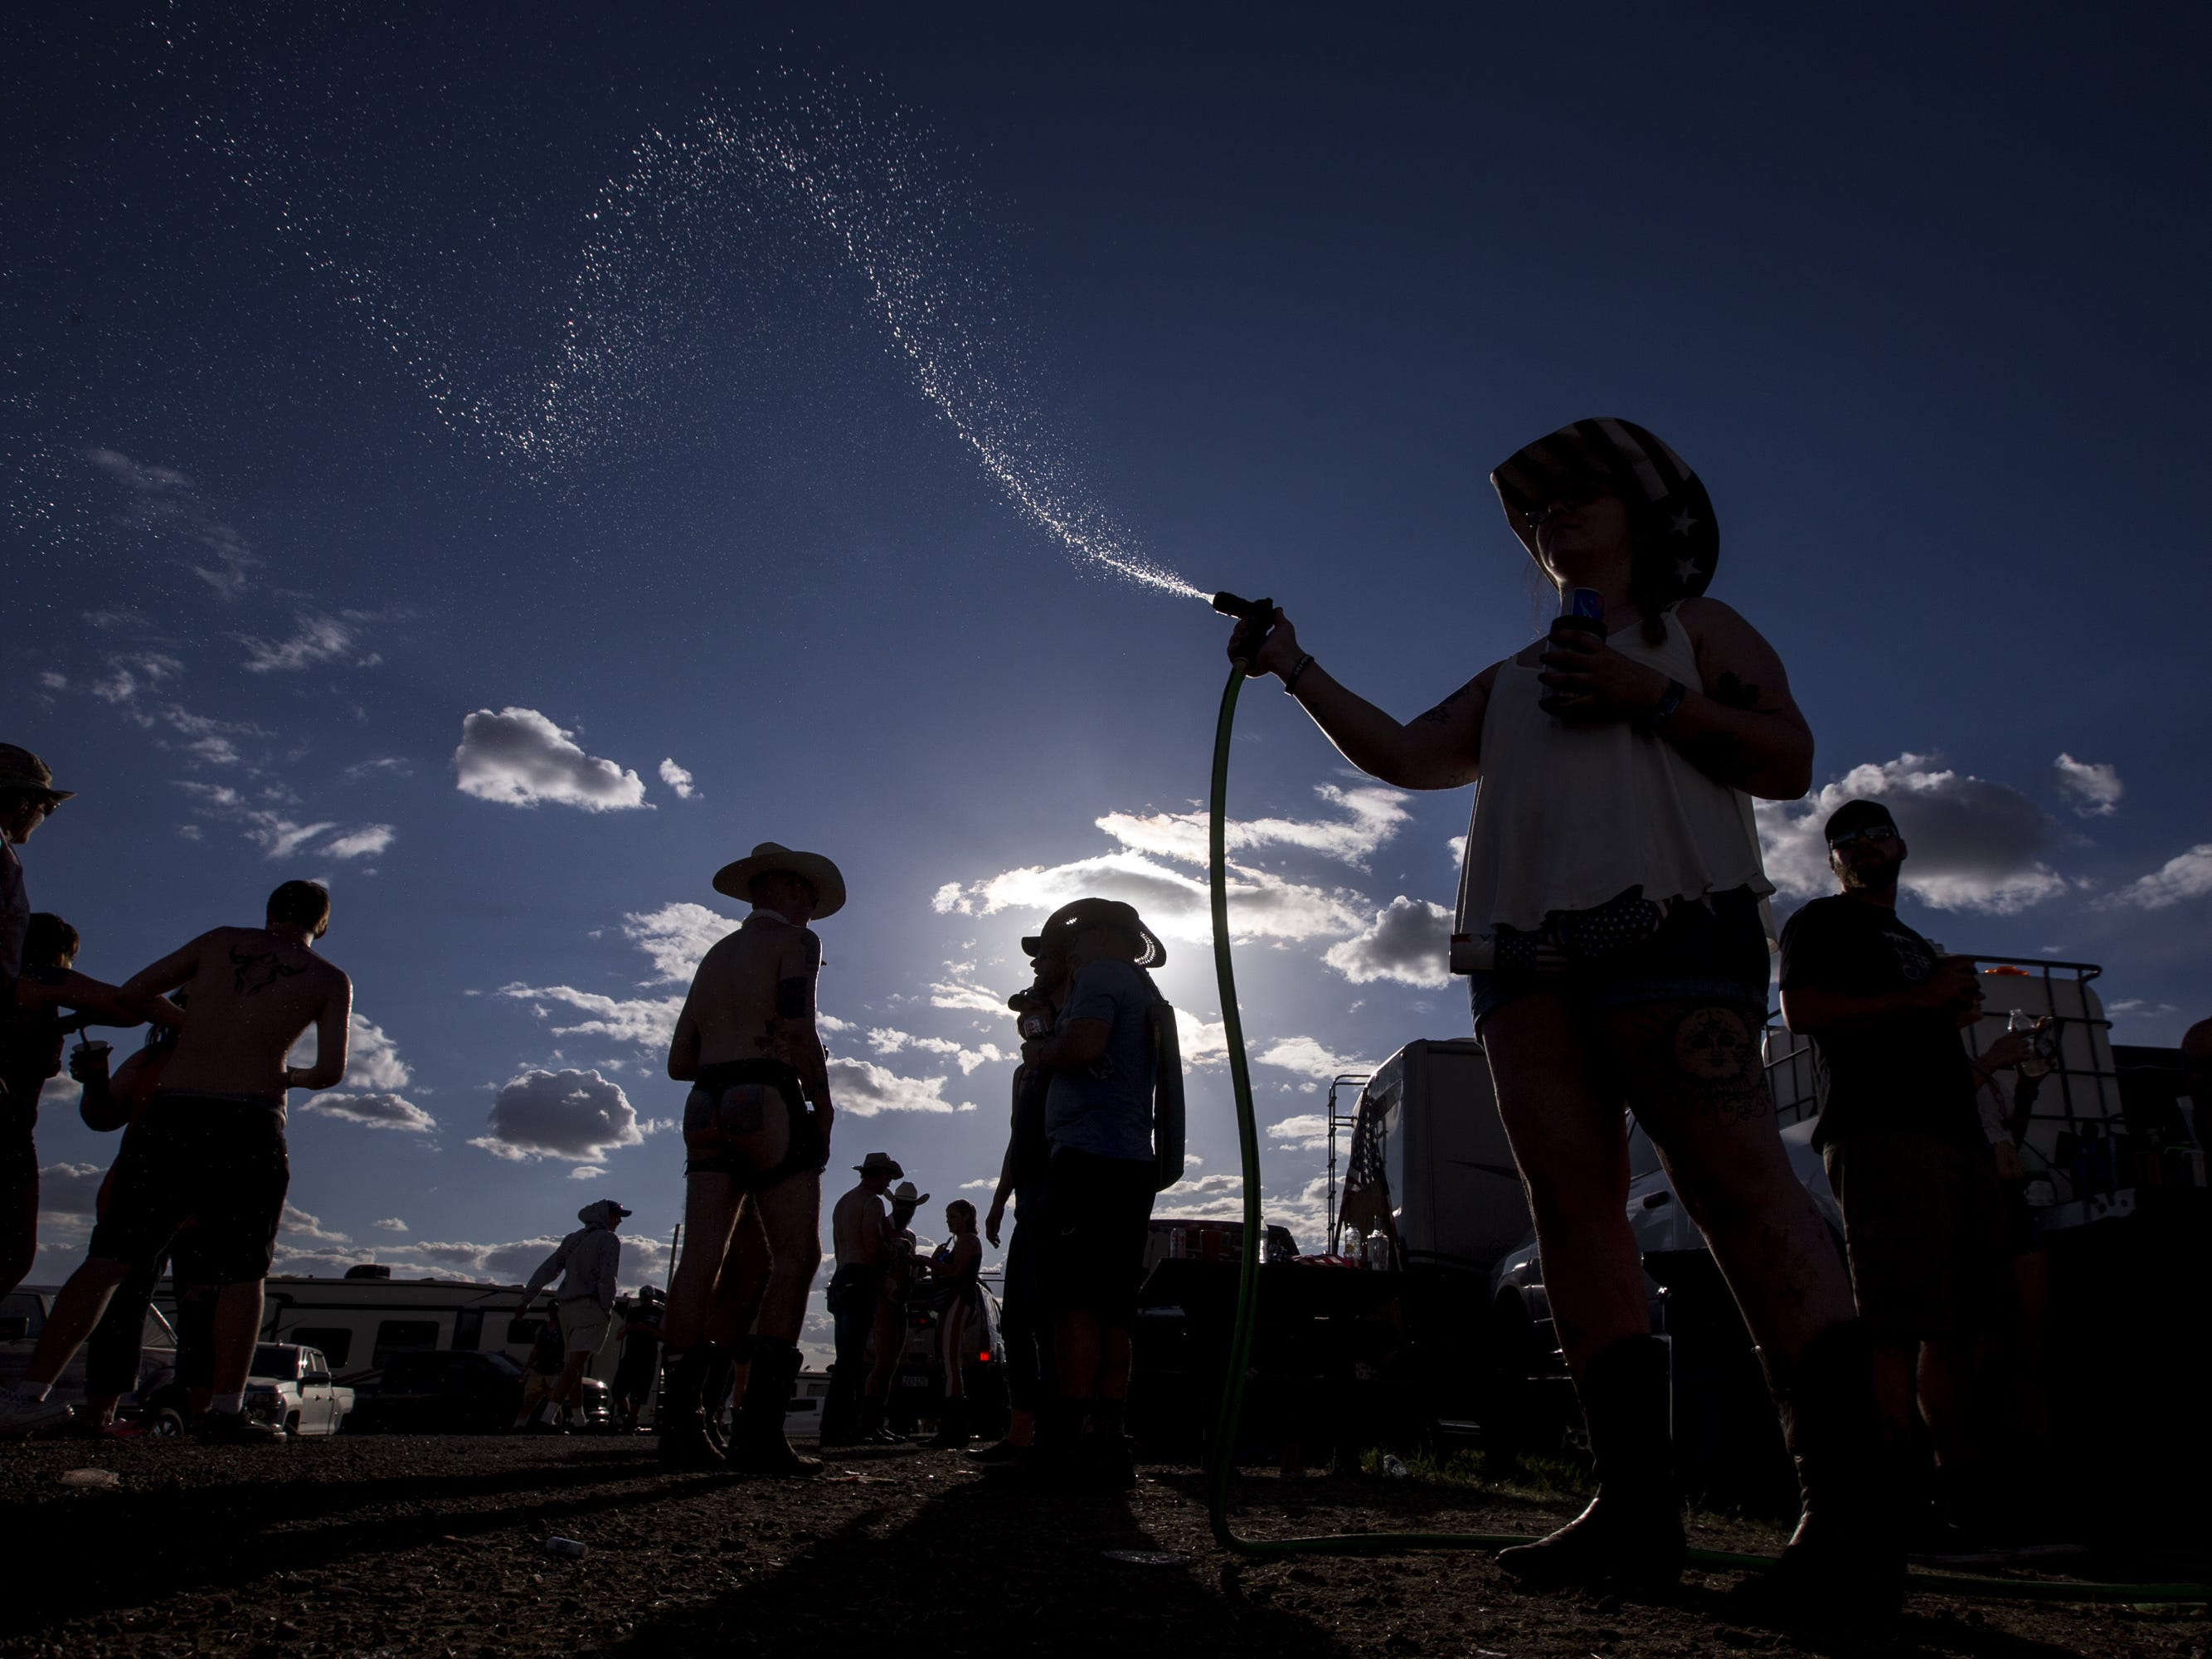 Kamiah Ruesga sprays people with water at the Crazy Coyote campground on Friday, April 12, 2019, during Day 2 of Country Thunder Arizona in Florence, Ariz.